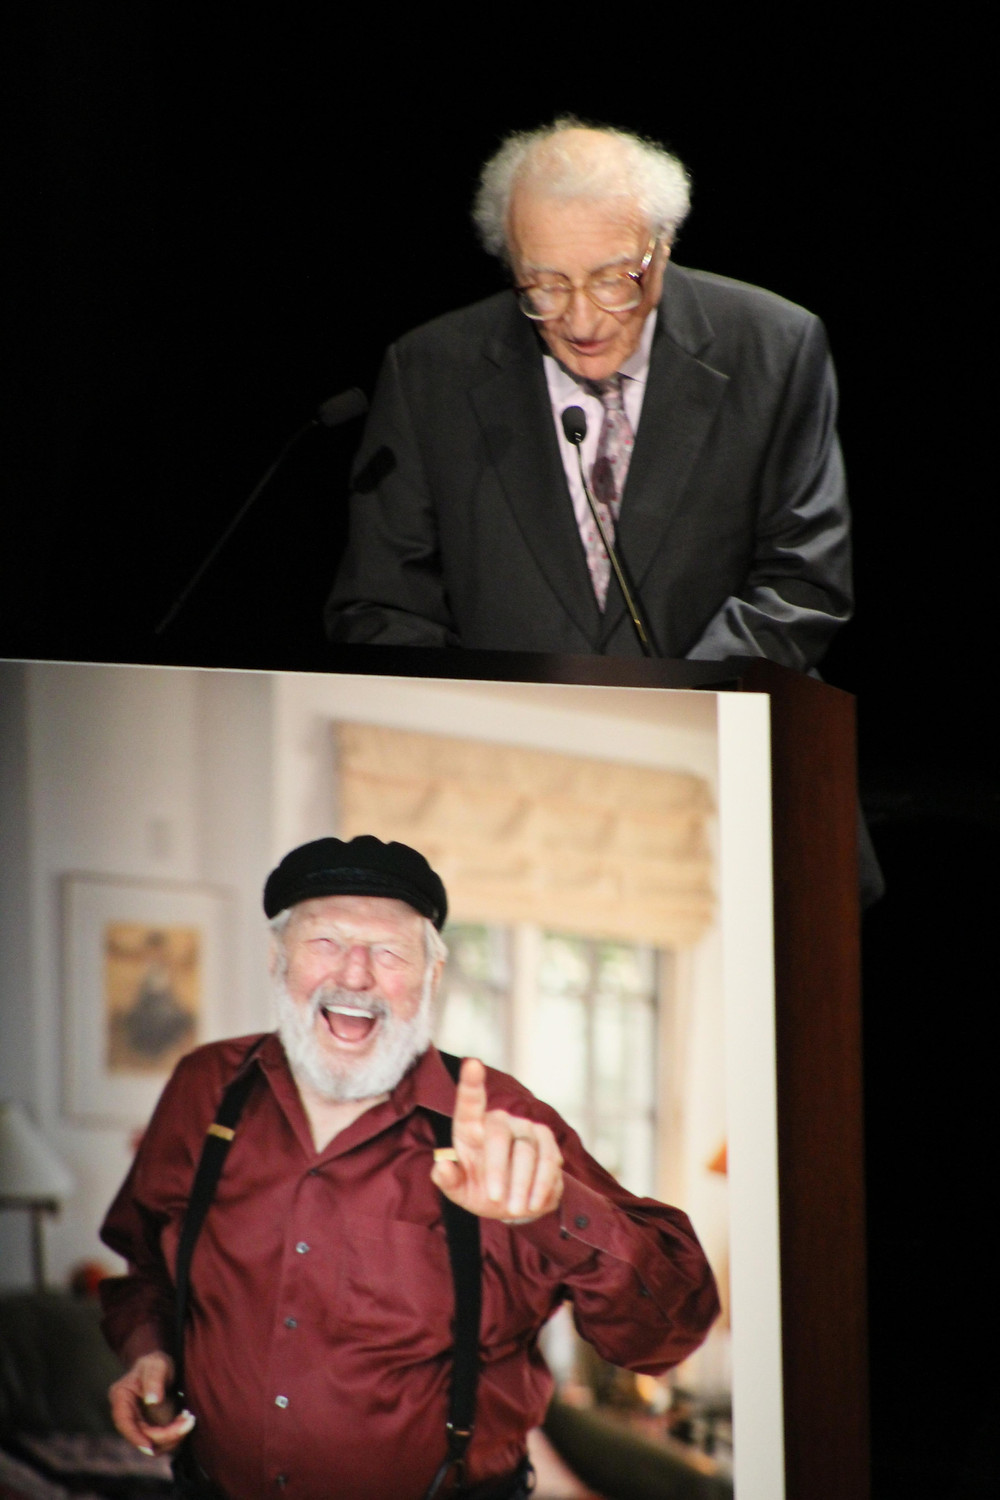 Remembering Theodore Bikel - The Culture News